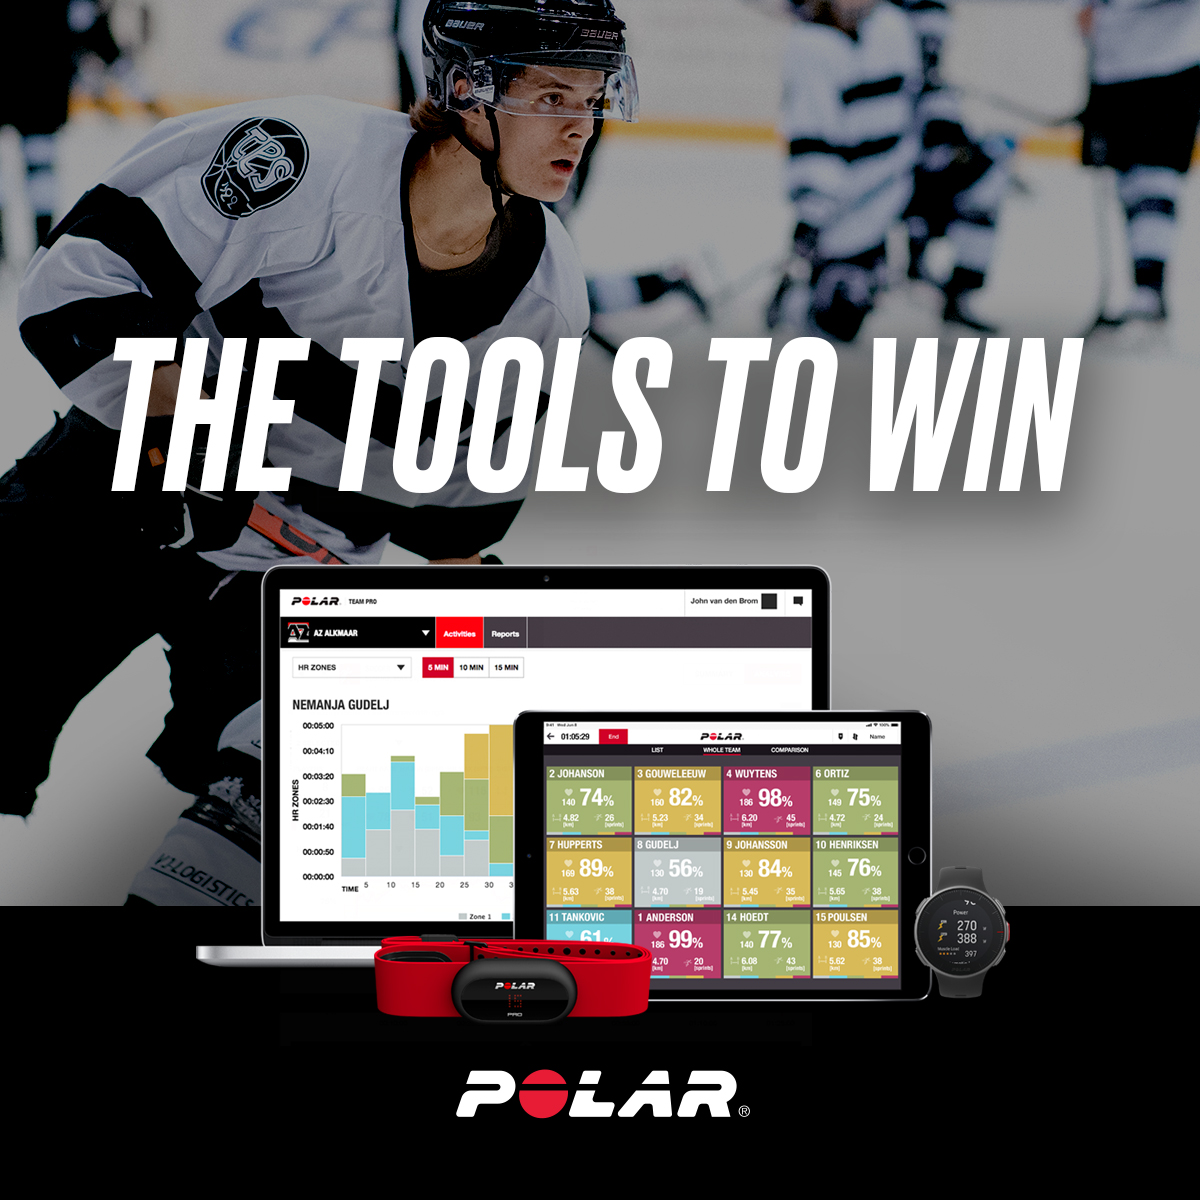 Despite these uncertain times, your competition is taking measures to get stronger, skate faster, & win more games. Will you be ready to win when the season starts?   Polar has the tools coaches & athletes need to stay in shape and ensure the team is ready to get back on the ice. https://t.co/Vyd2BMZYep